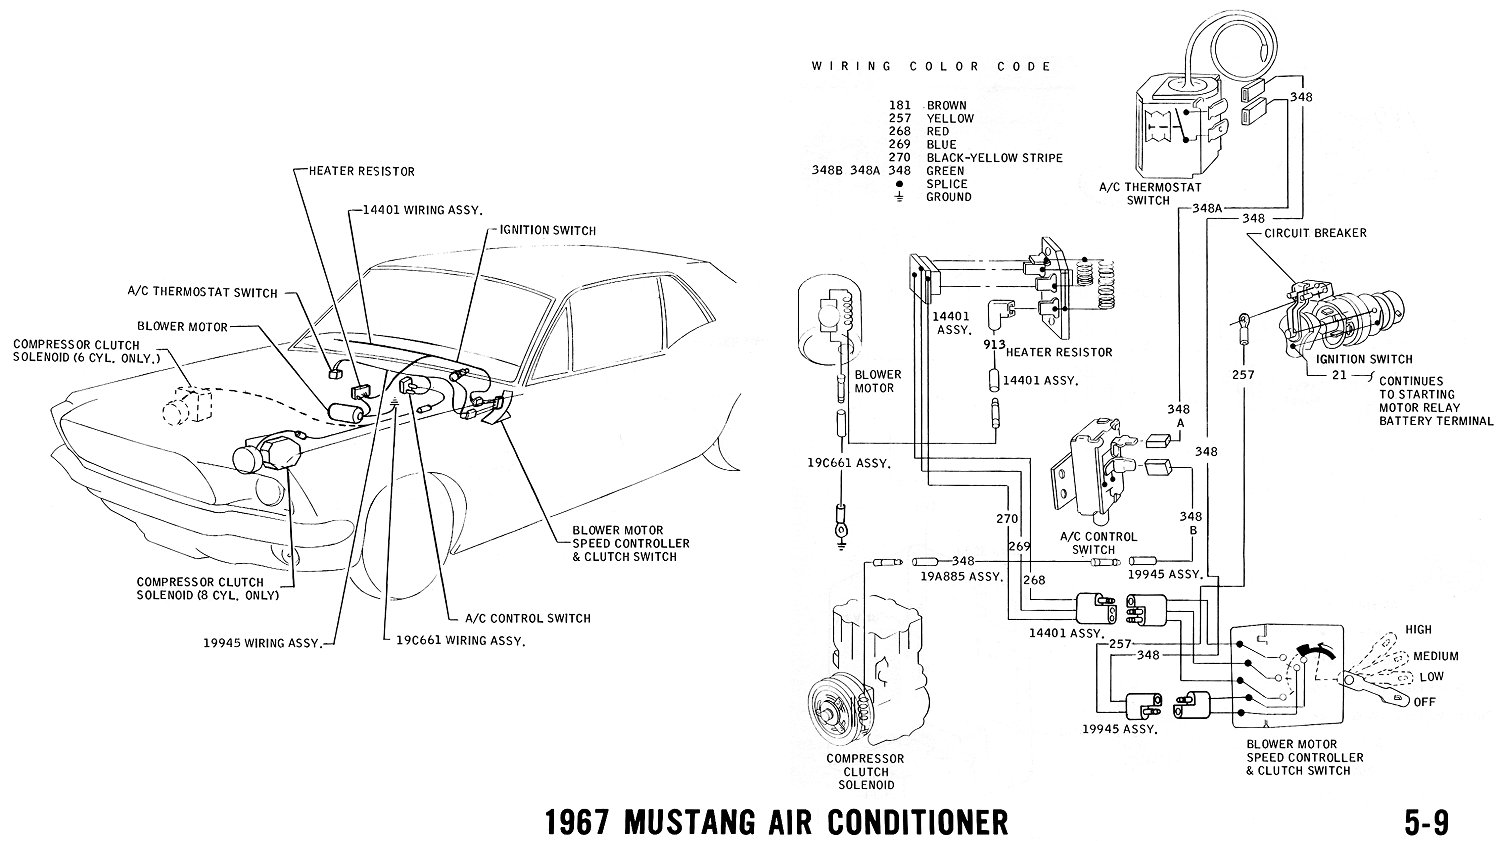 1967 Mustang Air Conditioner. Pictorial and Schematic ...